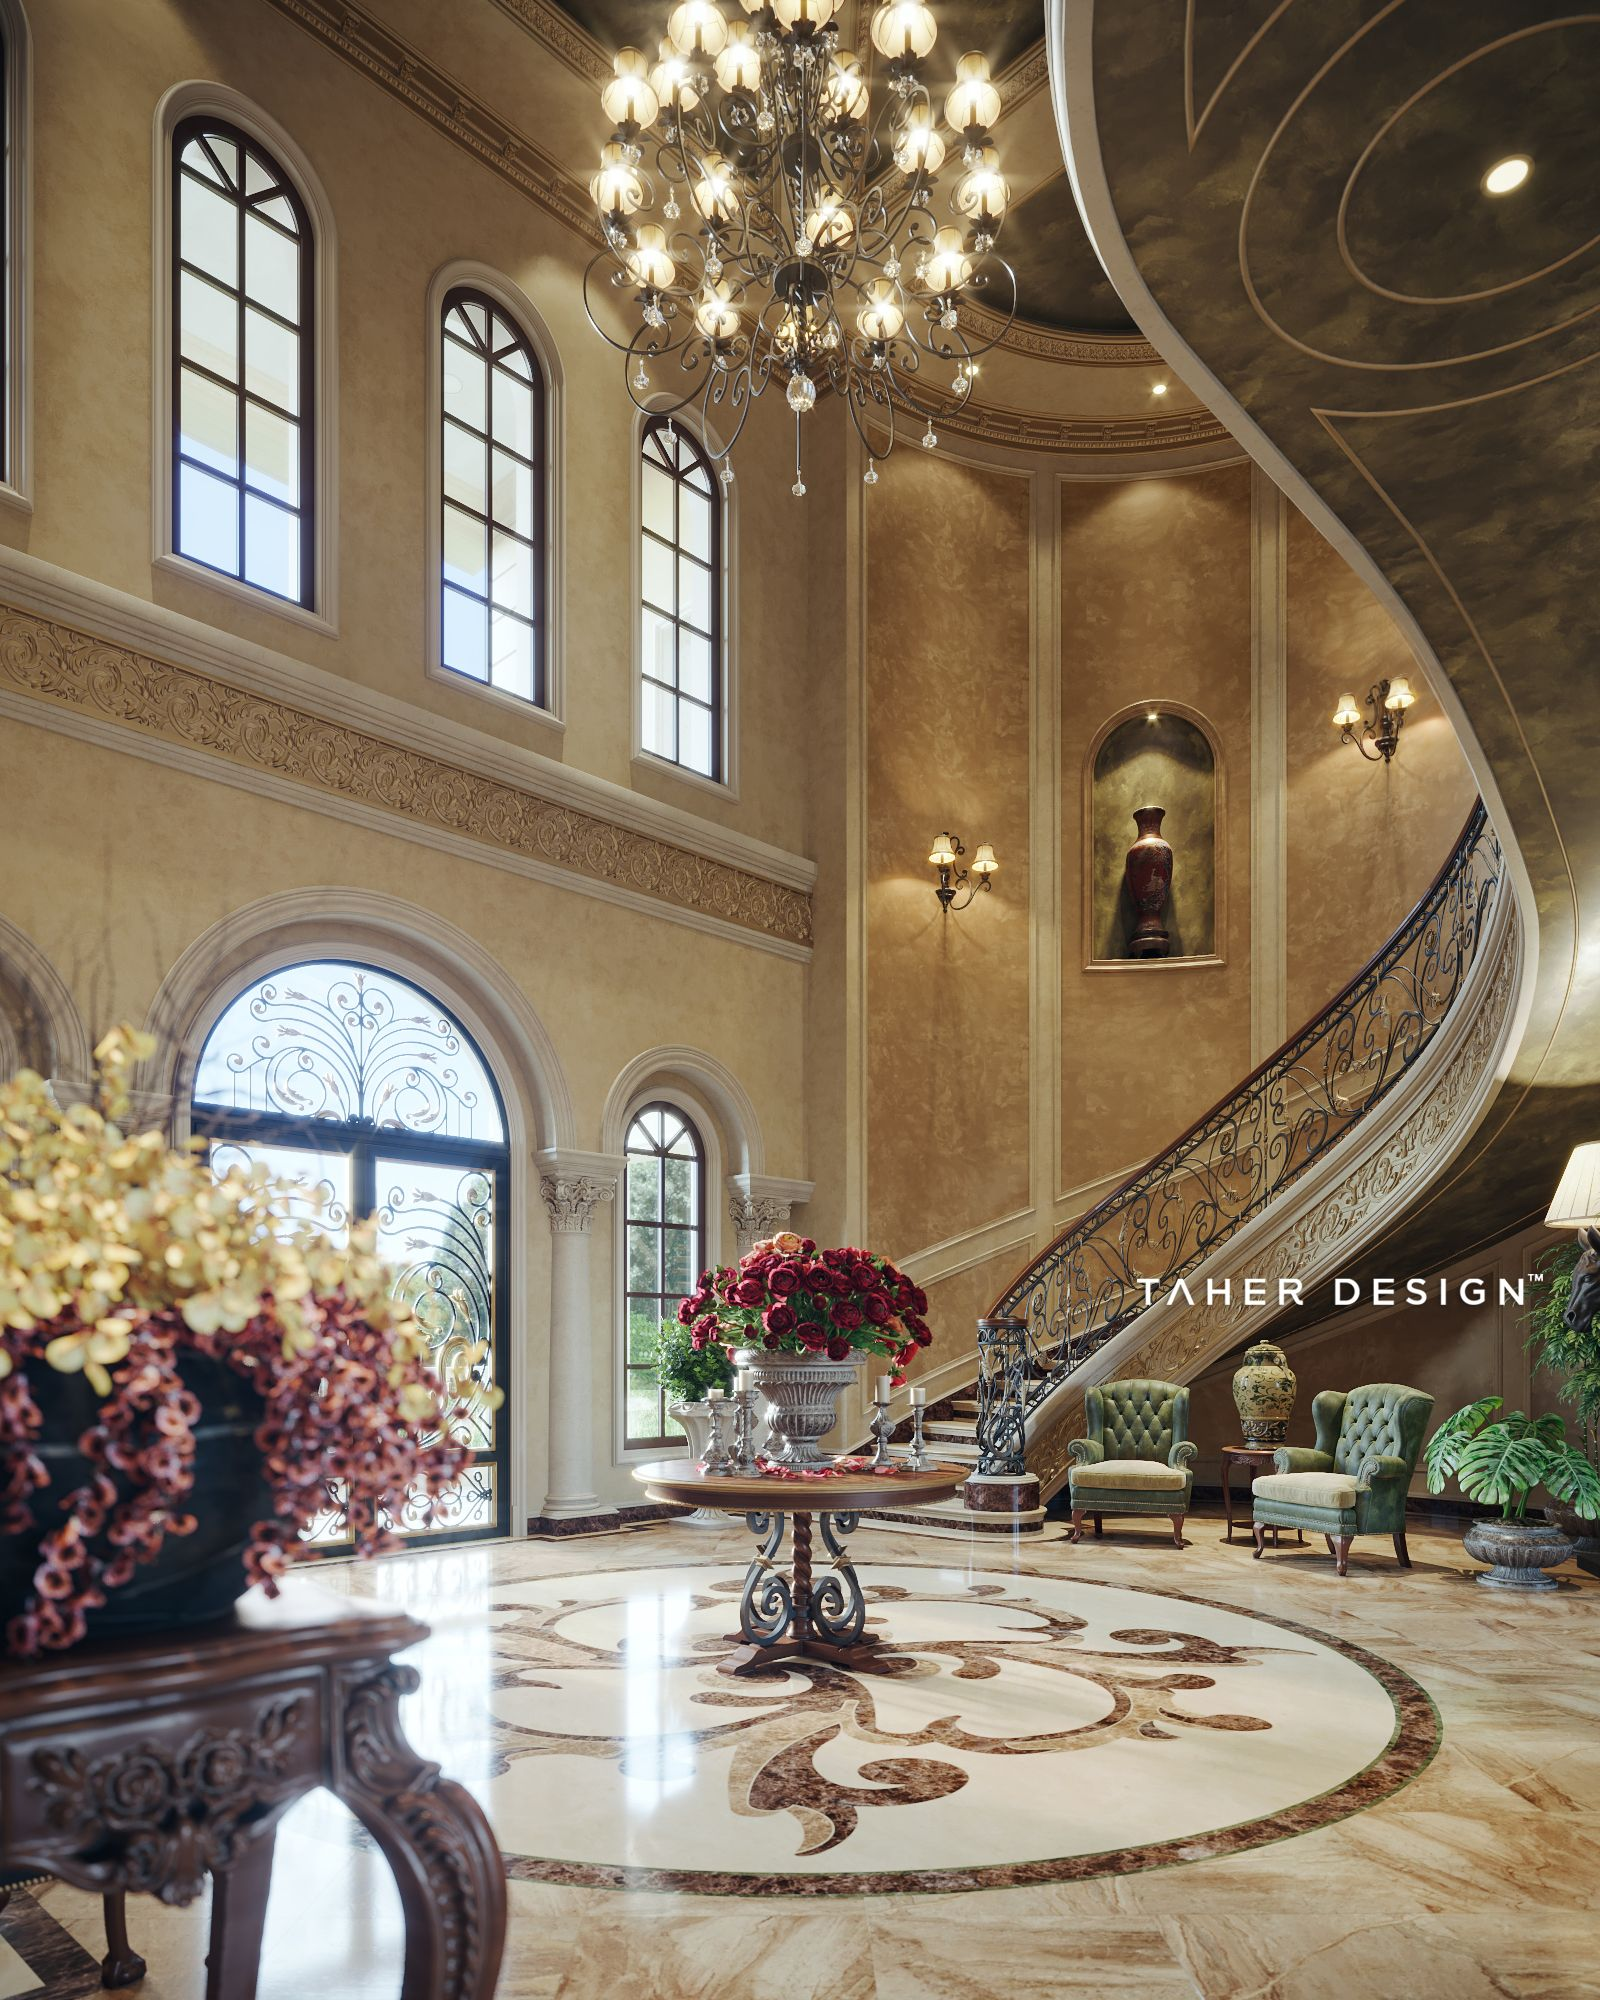 Grand Foyer Design For Luxury Mansion Located In (Dubai